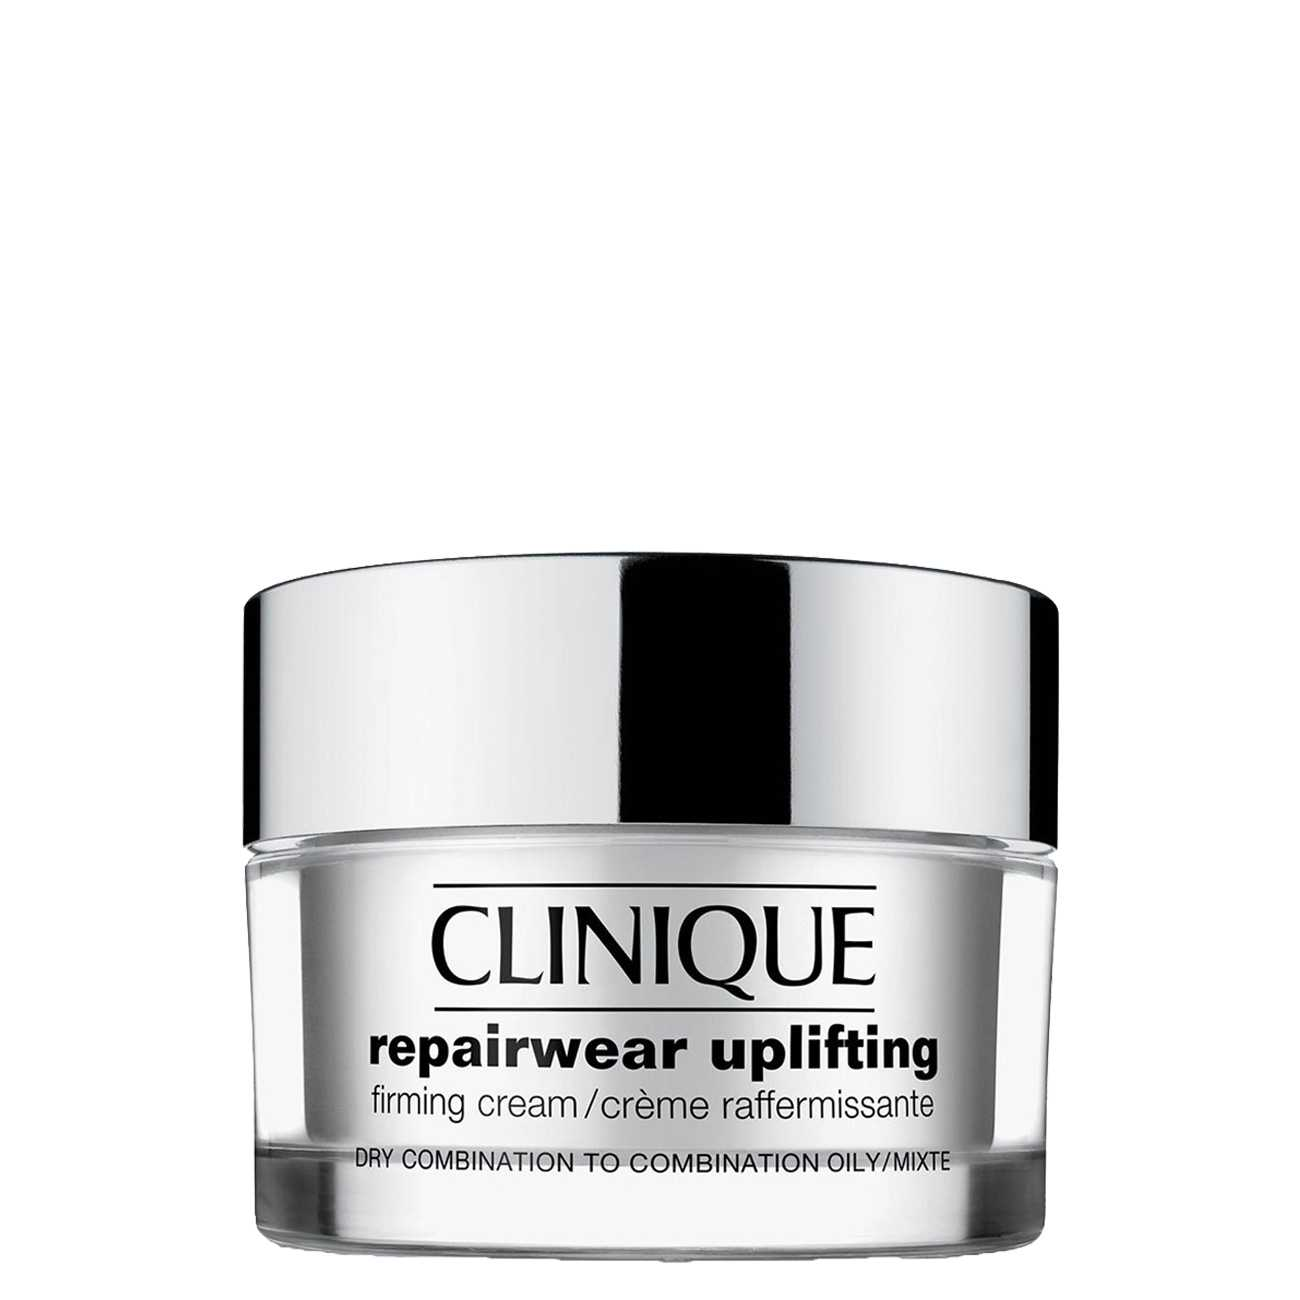 REPAIRWEAR UPLIFTING 50 ML